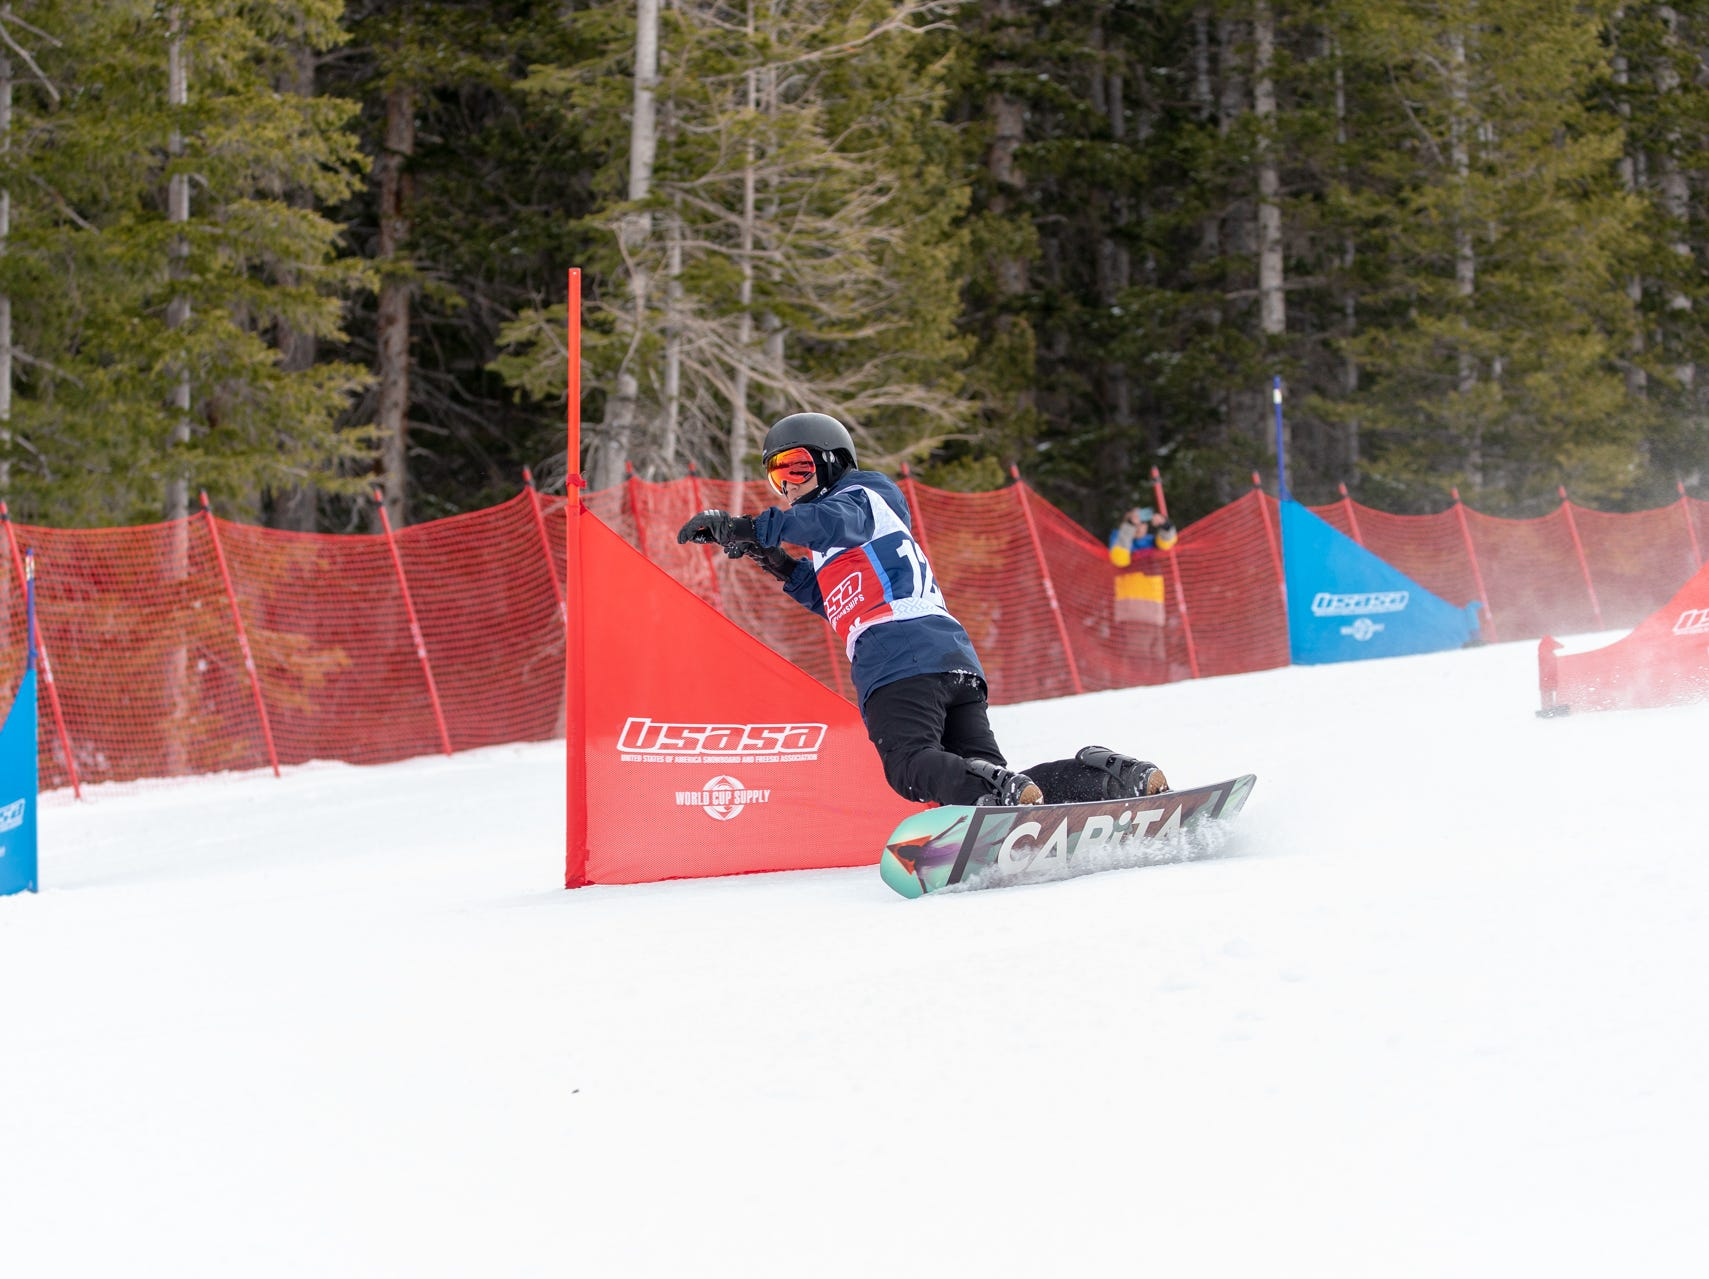 Joe Vericker of Shasta / North State snowboarders compete at the 2019 USASA National Championships at Copper Mountain in Colorado.